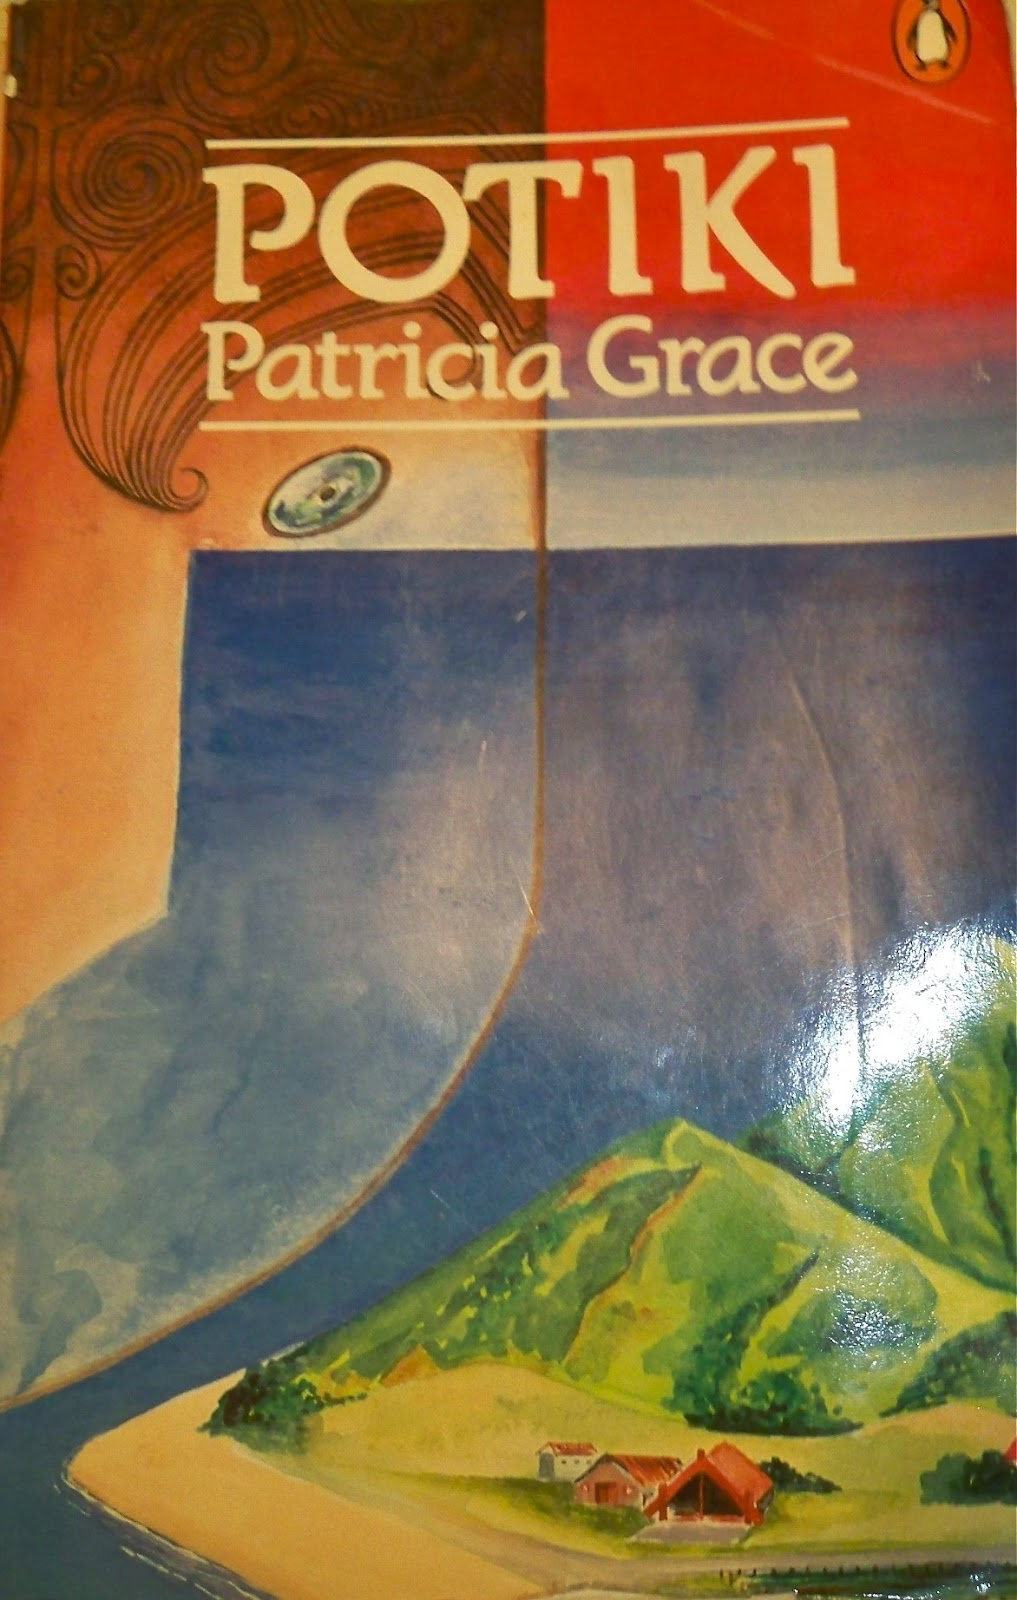 potiki patricia grace essay Potiki and the art of telling stories uploaded by lili wolff on sep 08, 2001 this is an explorative essay on the theme in patricia grace's novel potiki that 'telling and retelling stories is an important and valuable part of being human.